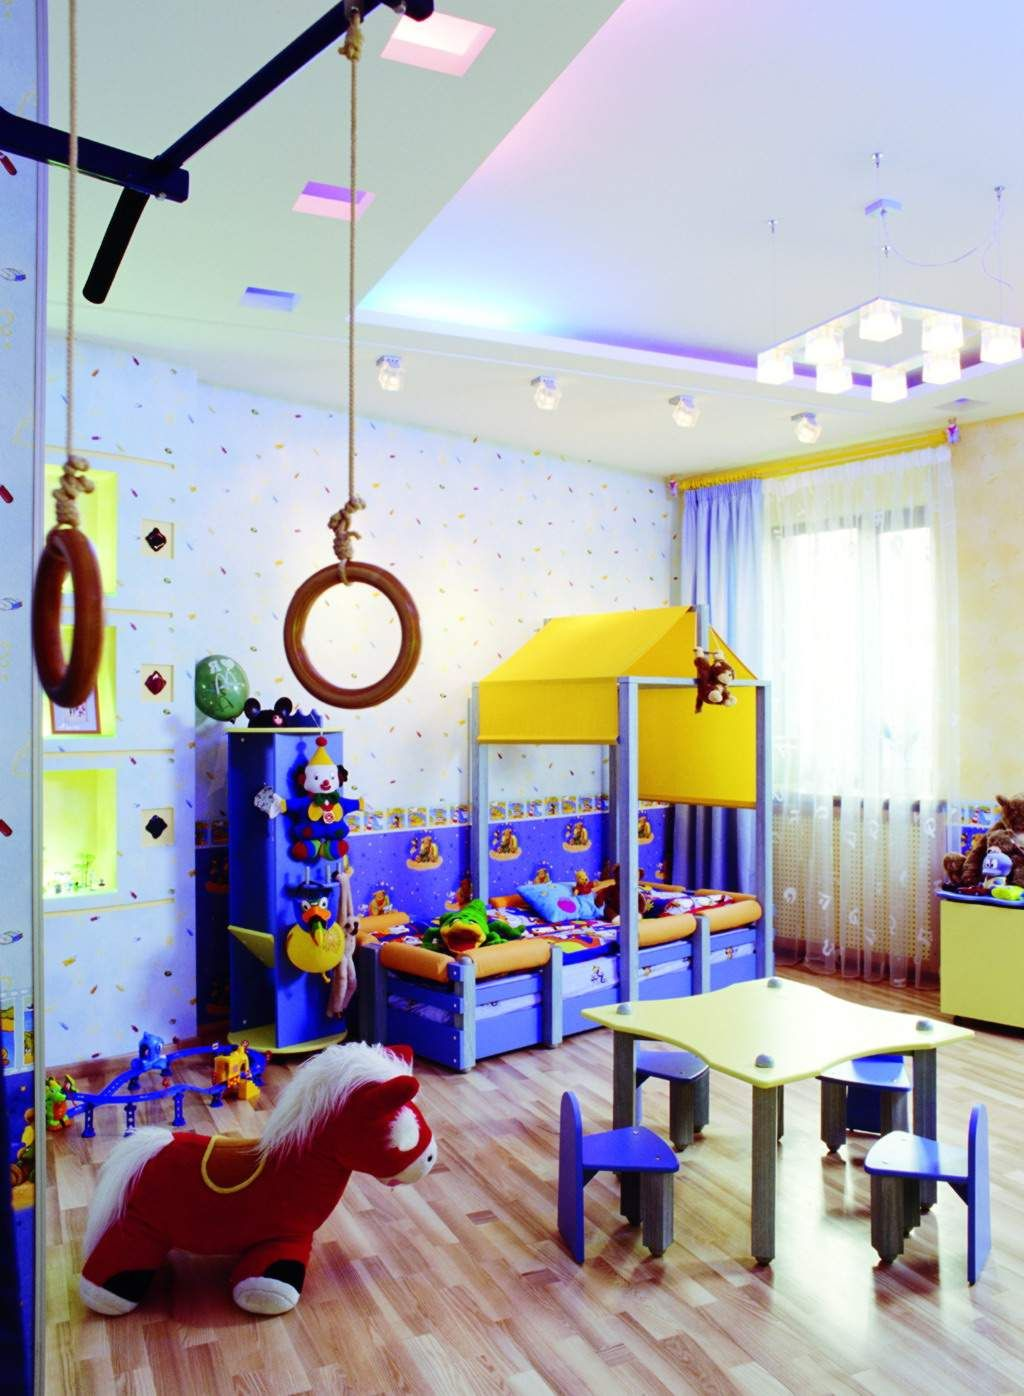 Kids bedroom kids room interior design with play and learn for Interior designs play